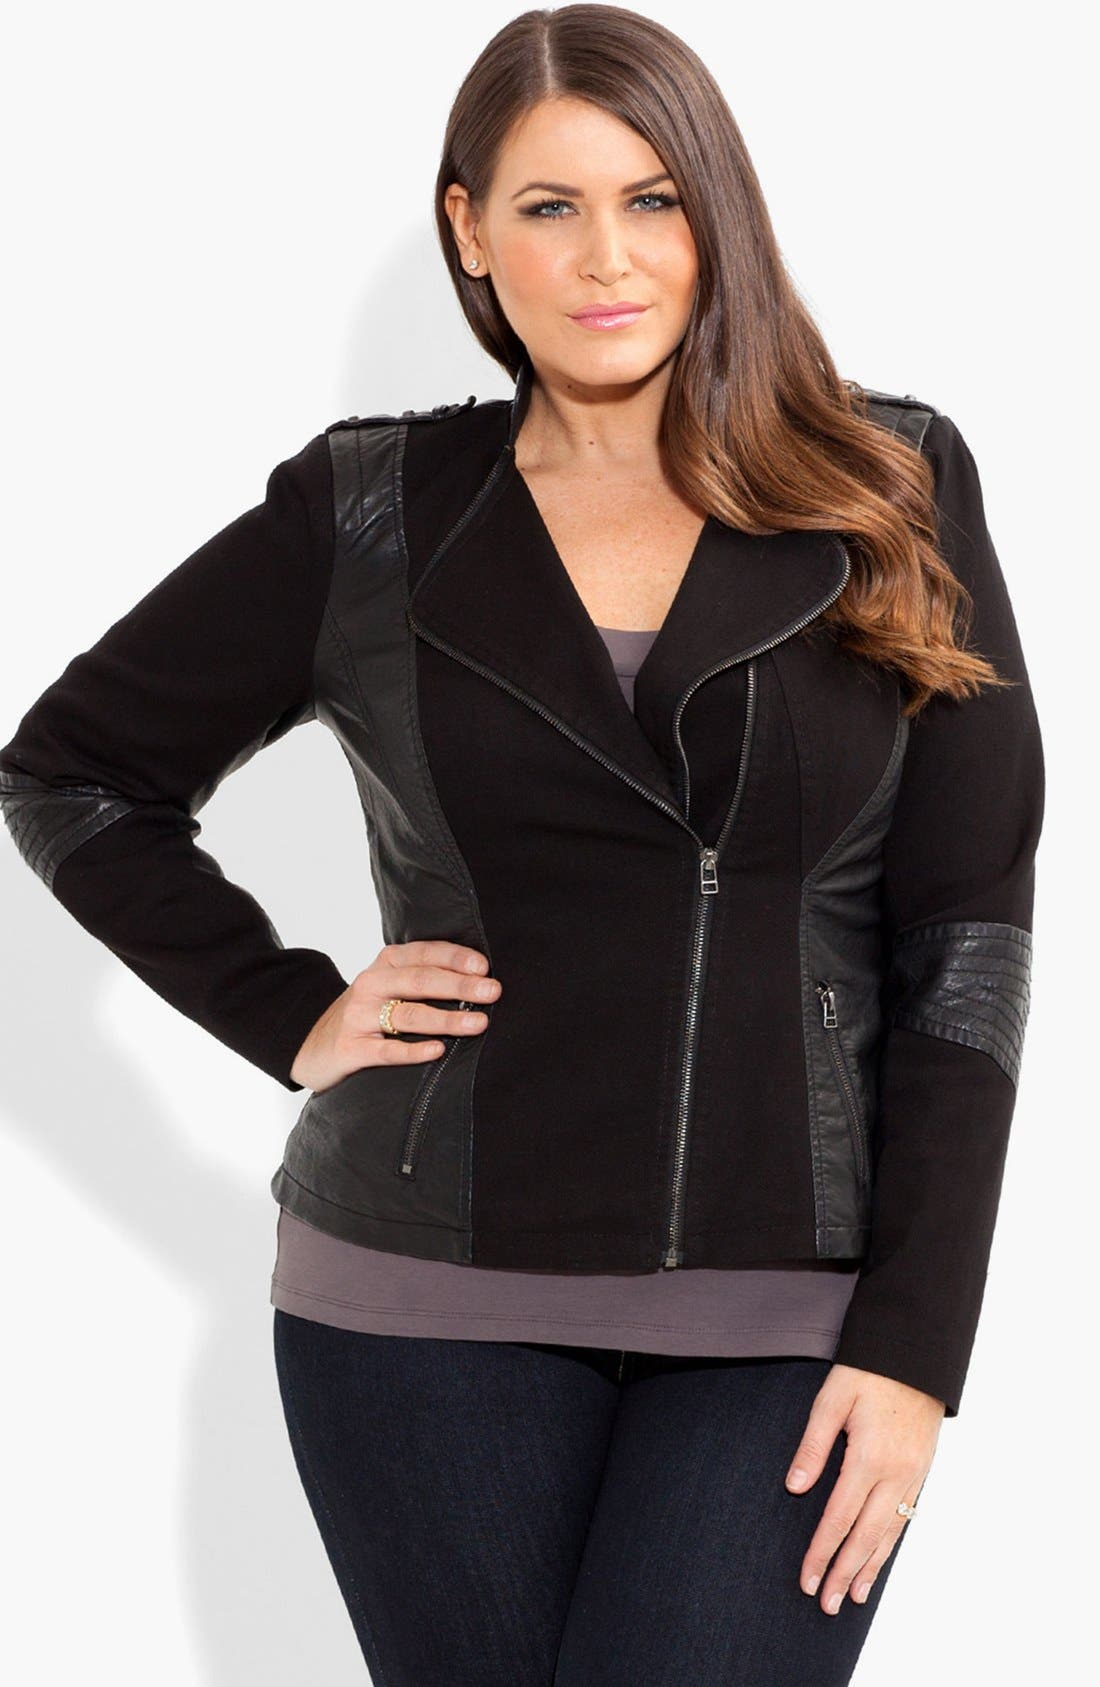 Alternate Image 1 Selected - City Chic 'Suri' Faux Leather Spliced Jacket (Plus Size)